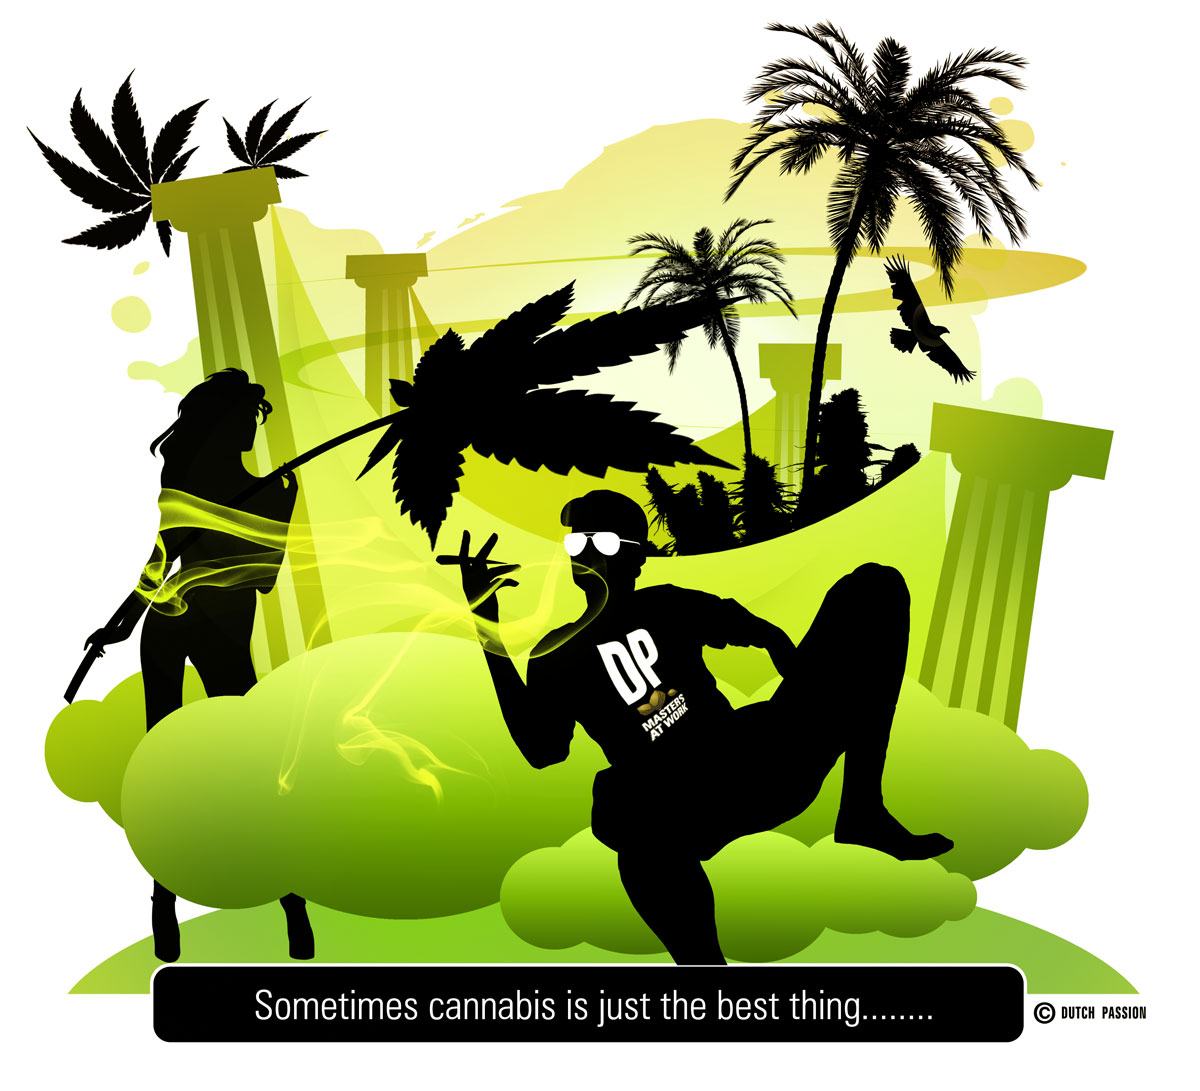 cannabis is just the best thing sometimes baby